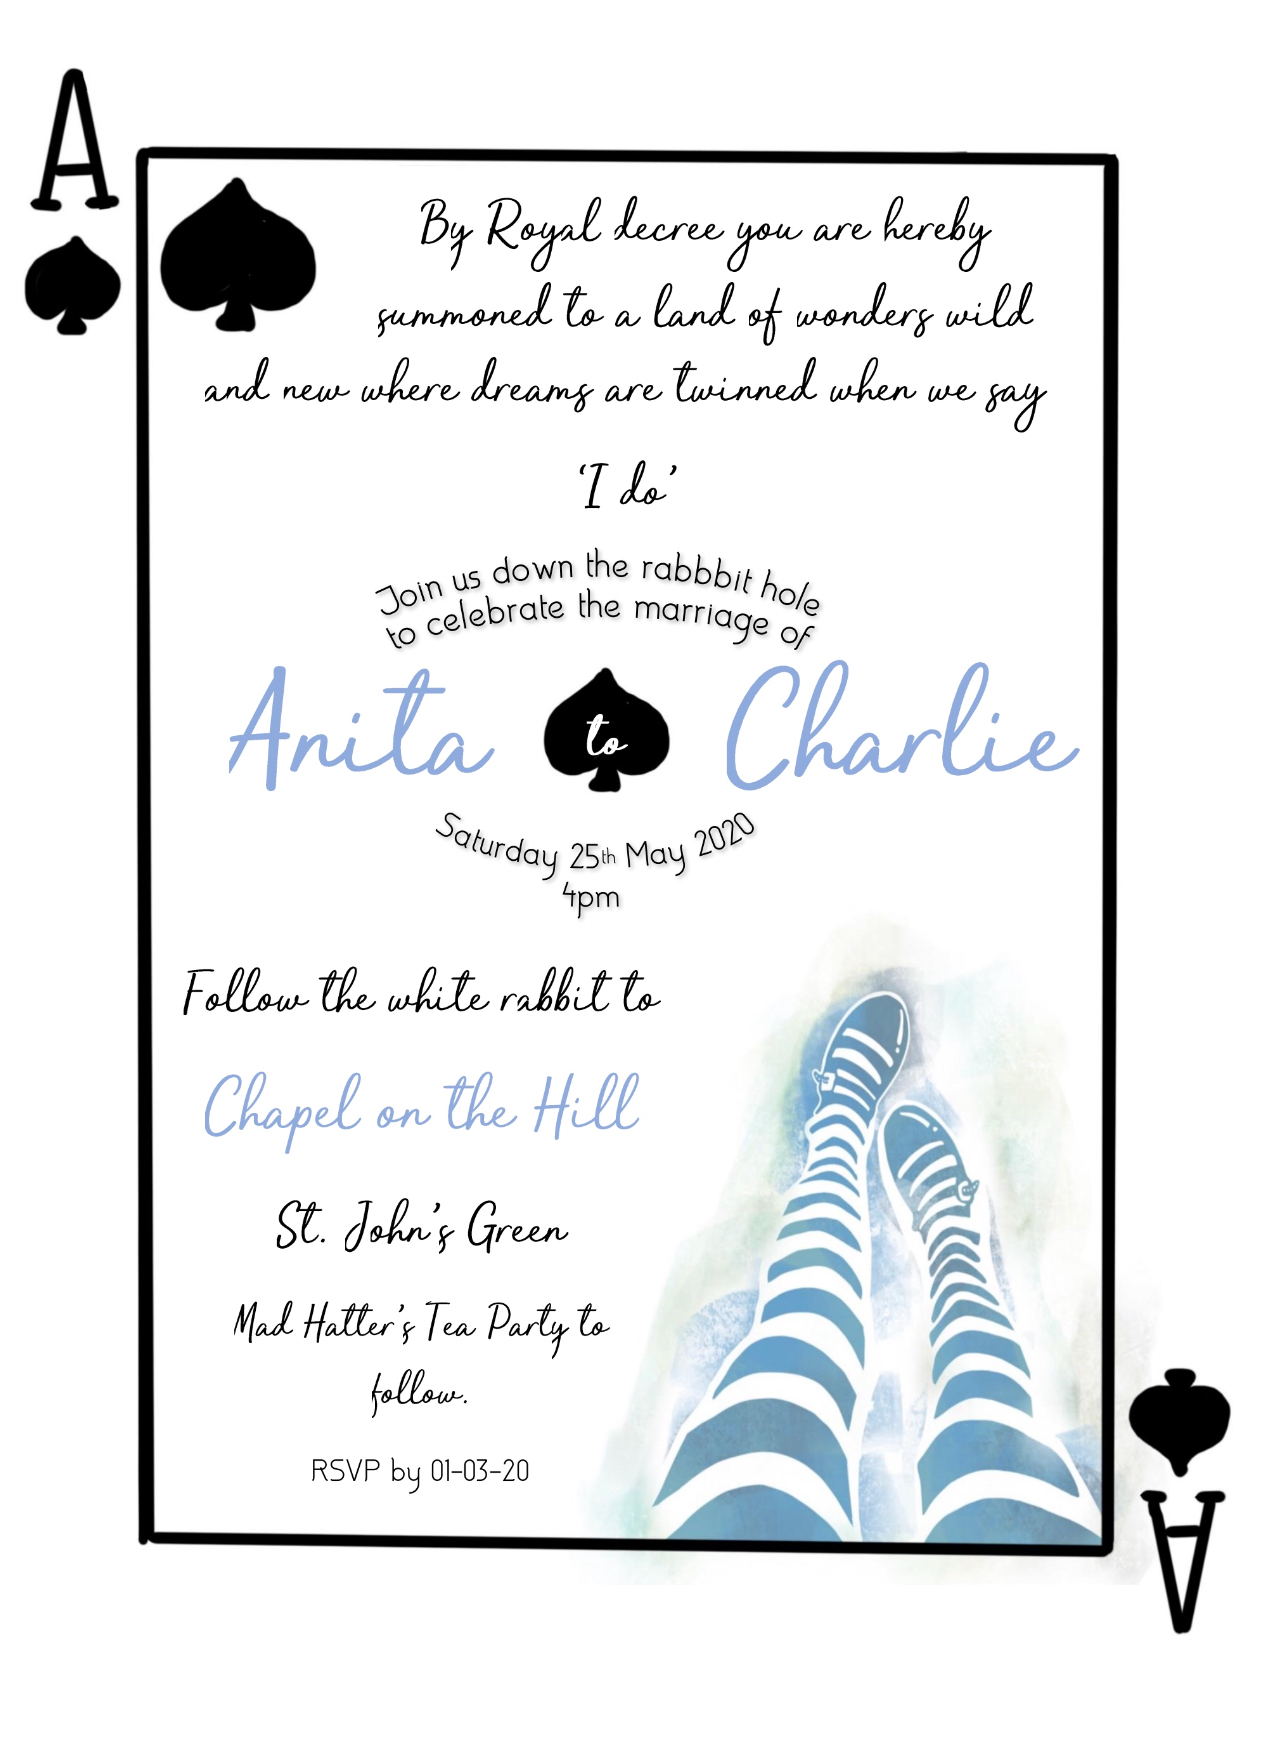 inked by hand 1 - wedding stationery - water colour - alice in wonderland wedding day - inspiration - alternative - unconventional